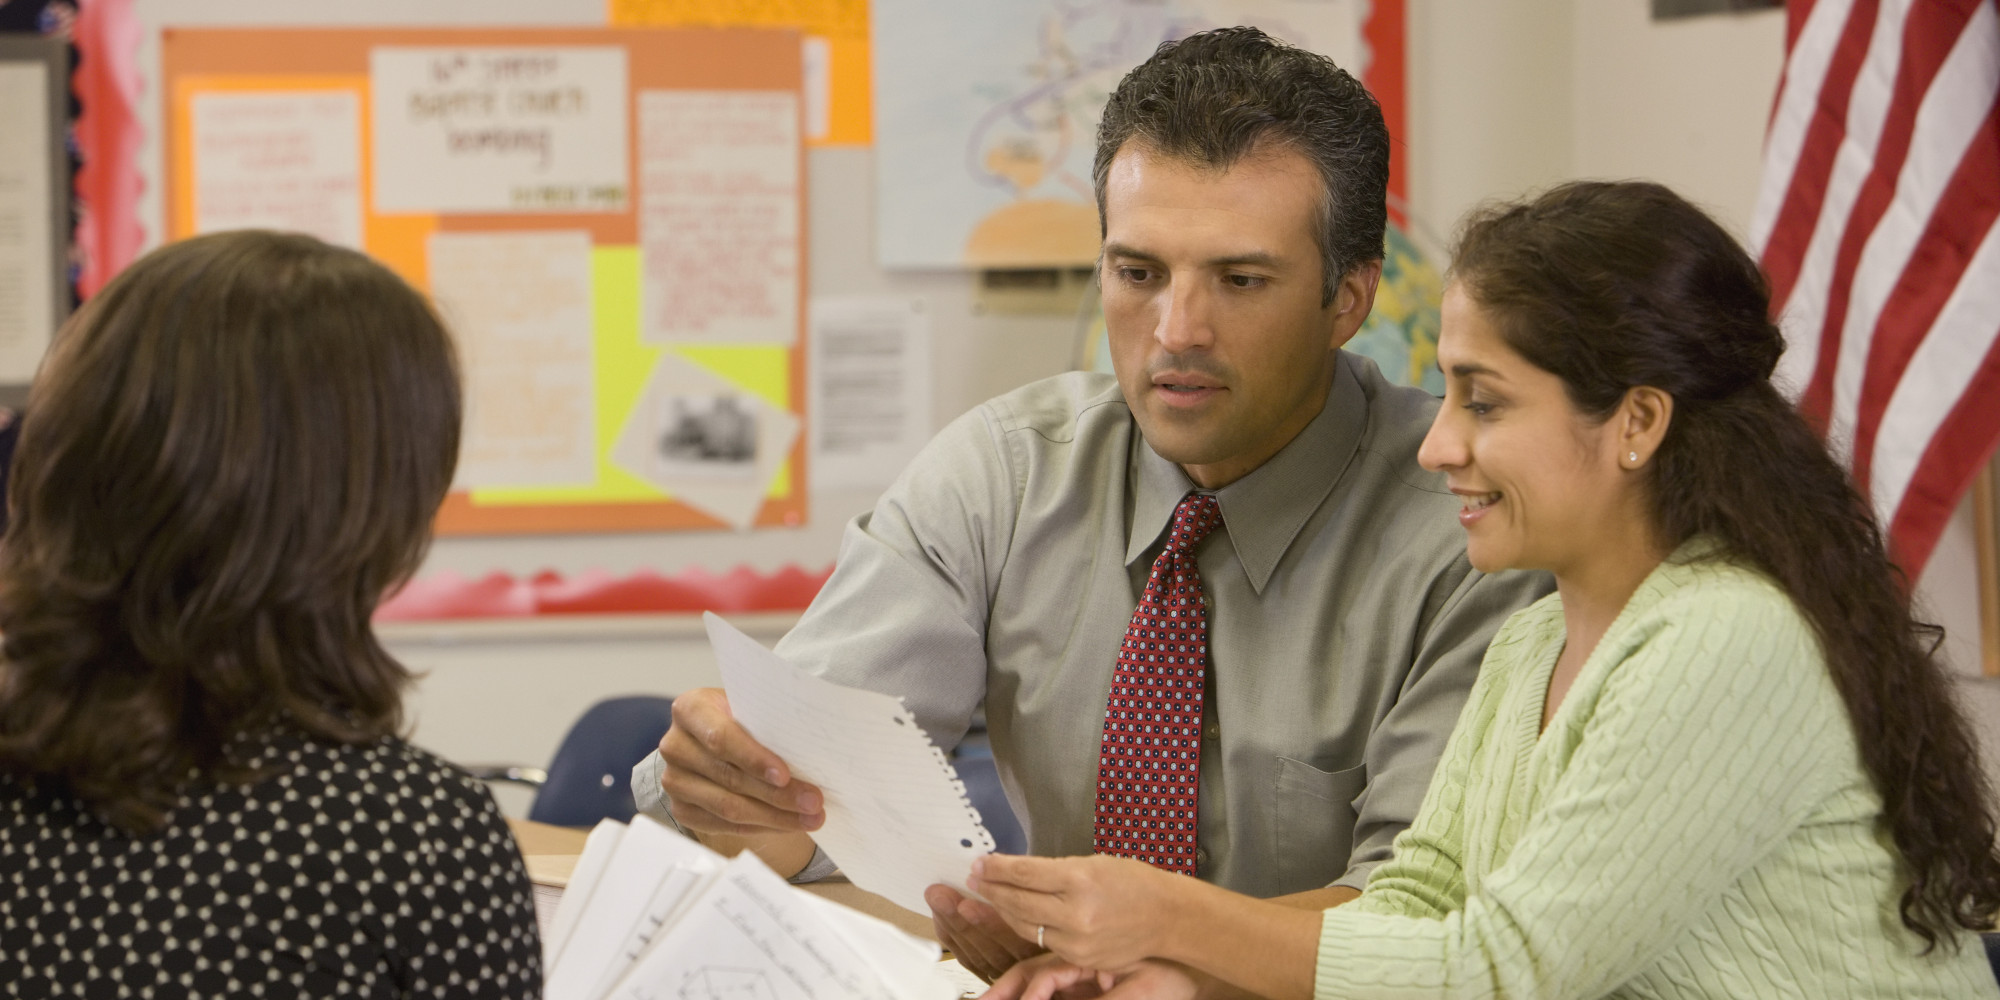 parent teacher meeting Download and customize panorama's meeting agenda to make parent-teacher conferences in your school productive for teachers and families alike.